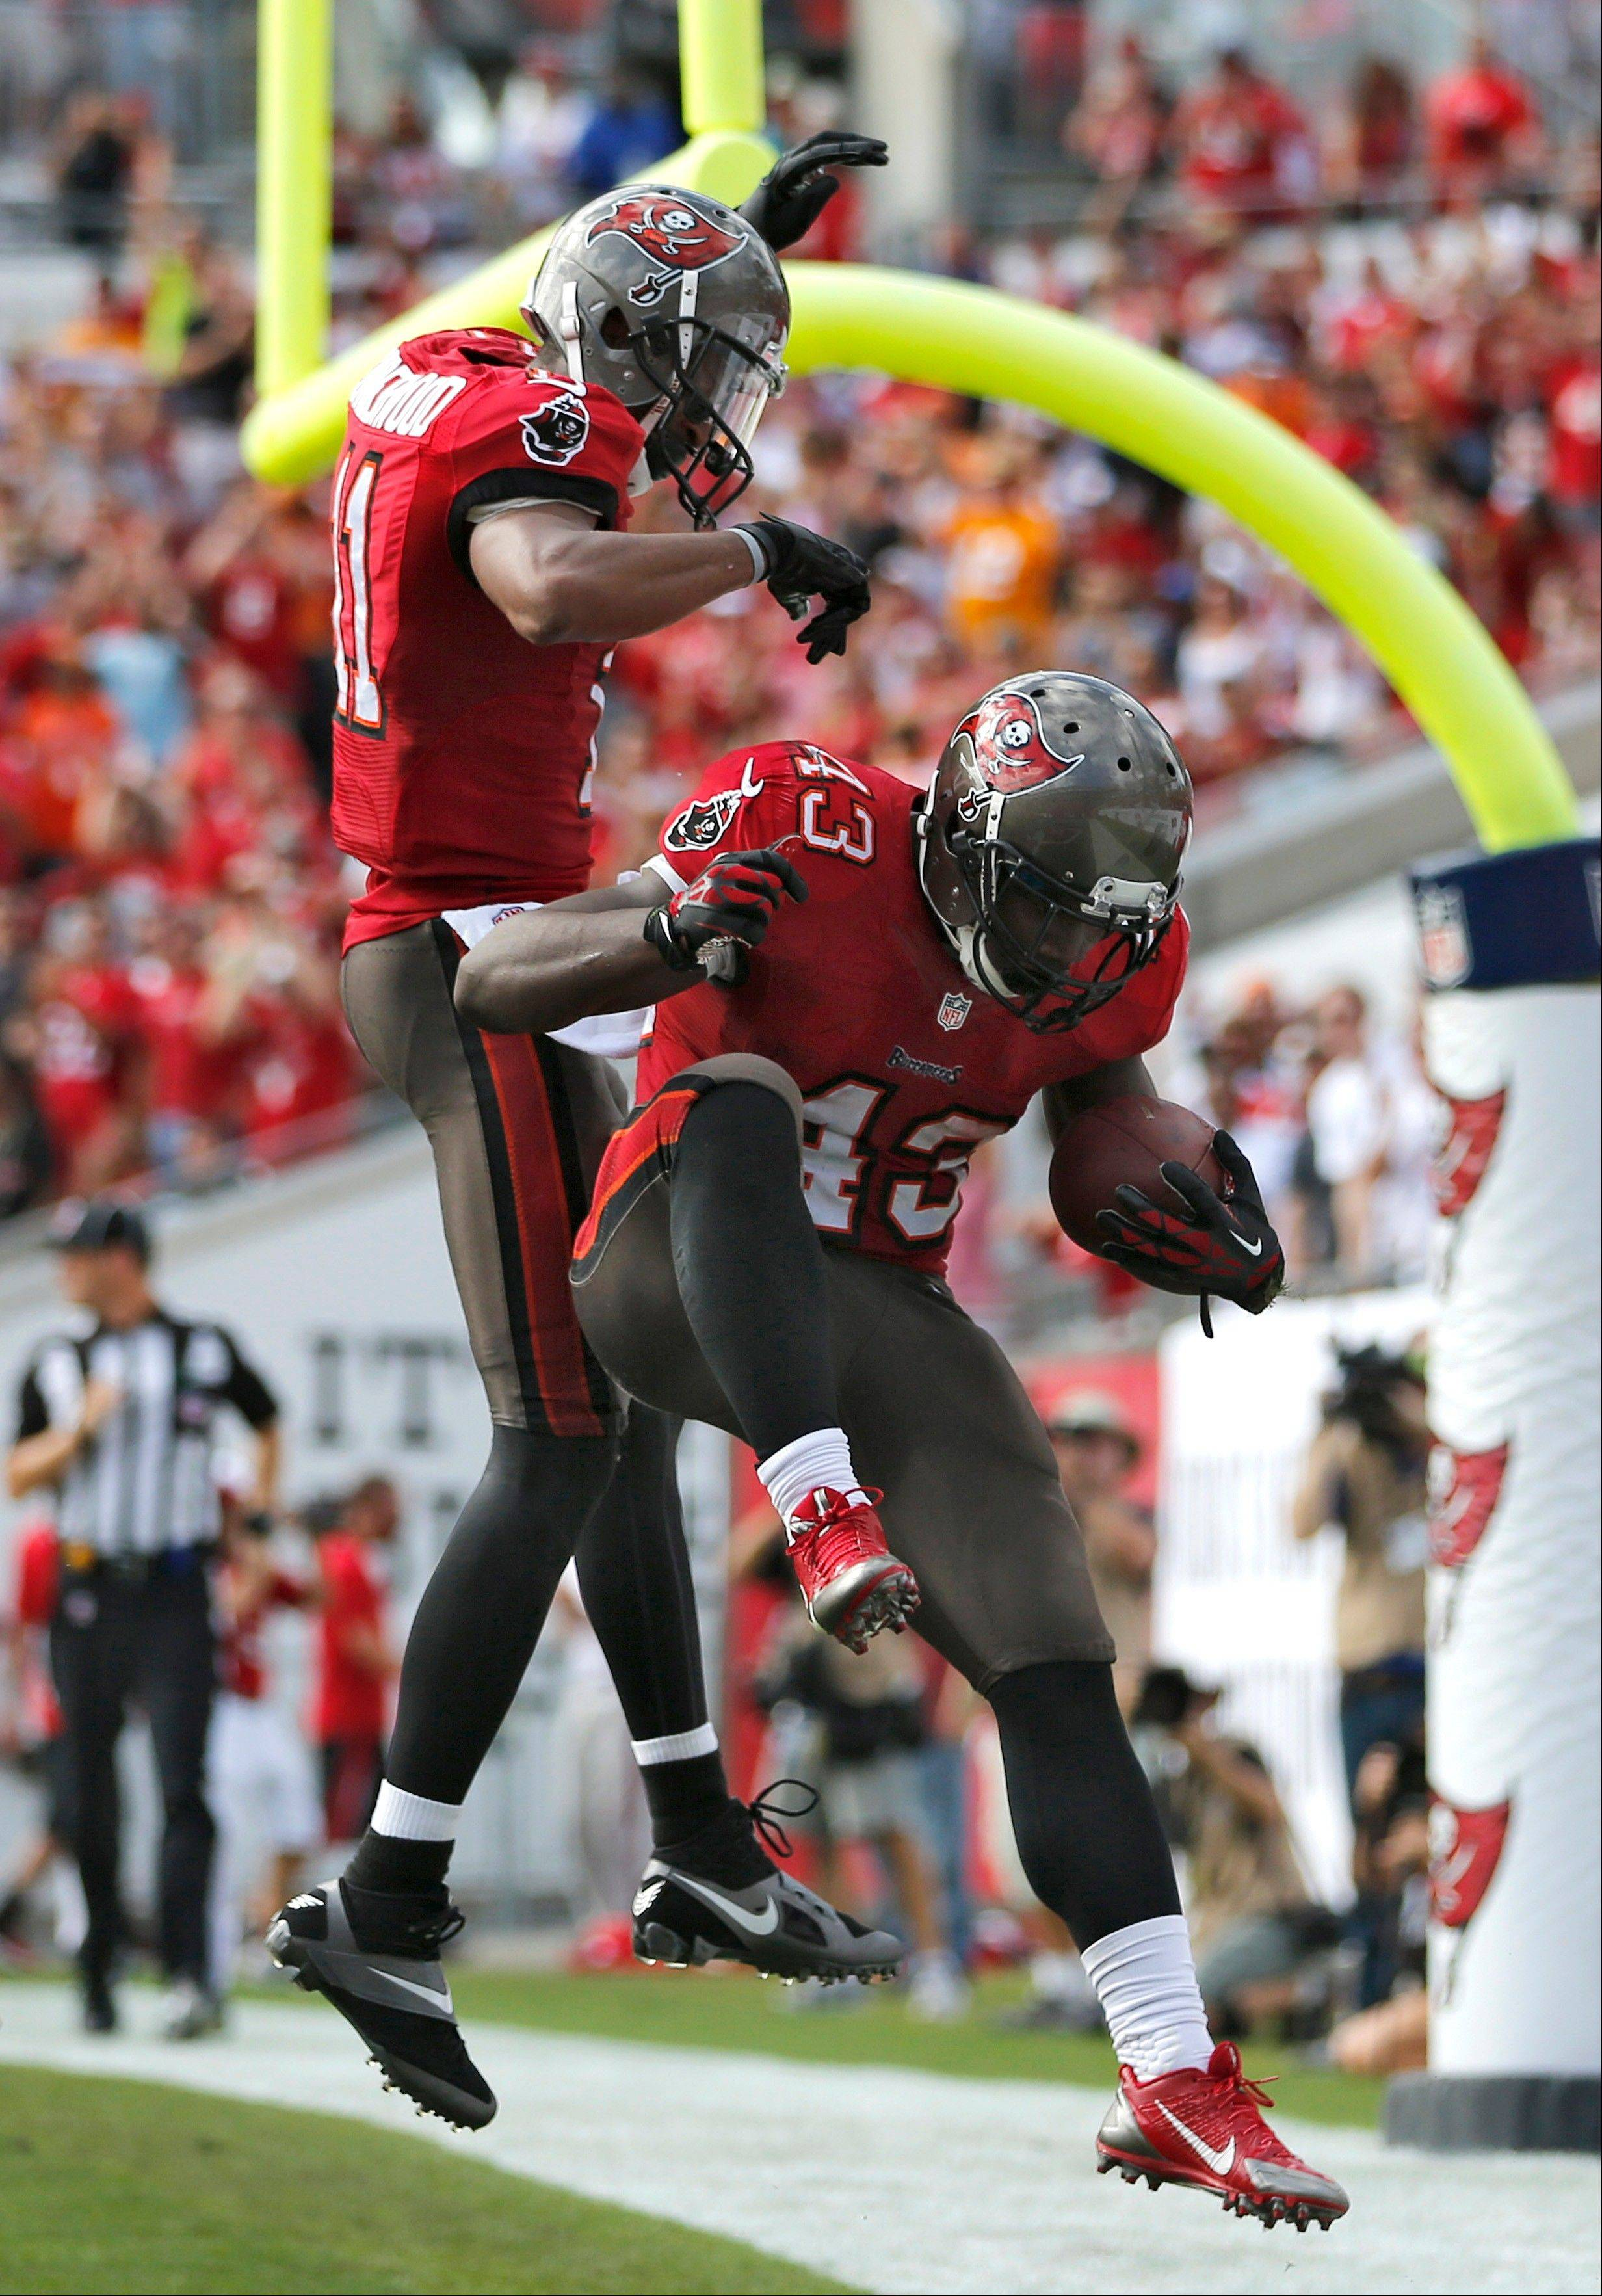 Tampa Bay Buccaneers running back Bobby Rainey (43) celebrates with wide receiver Tiquan Underwood (11) after scoring on a 43-yard touchdown run against the Atlanta Falcons during the second quarter of an NFL football game on Sunday, Nov. 17, 2013, in Tampa, Fla.